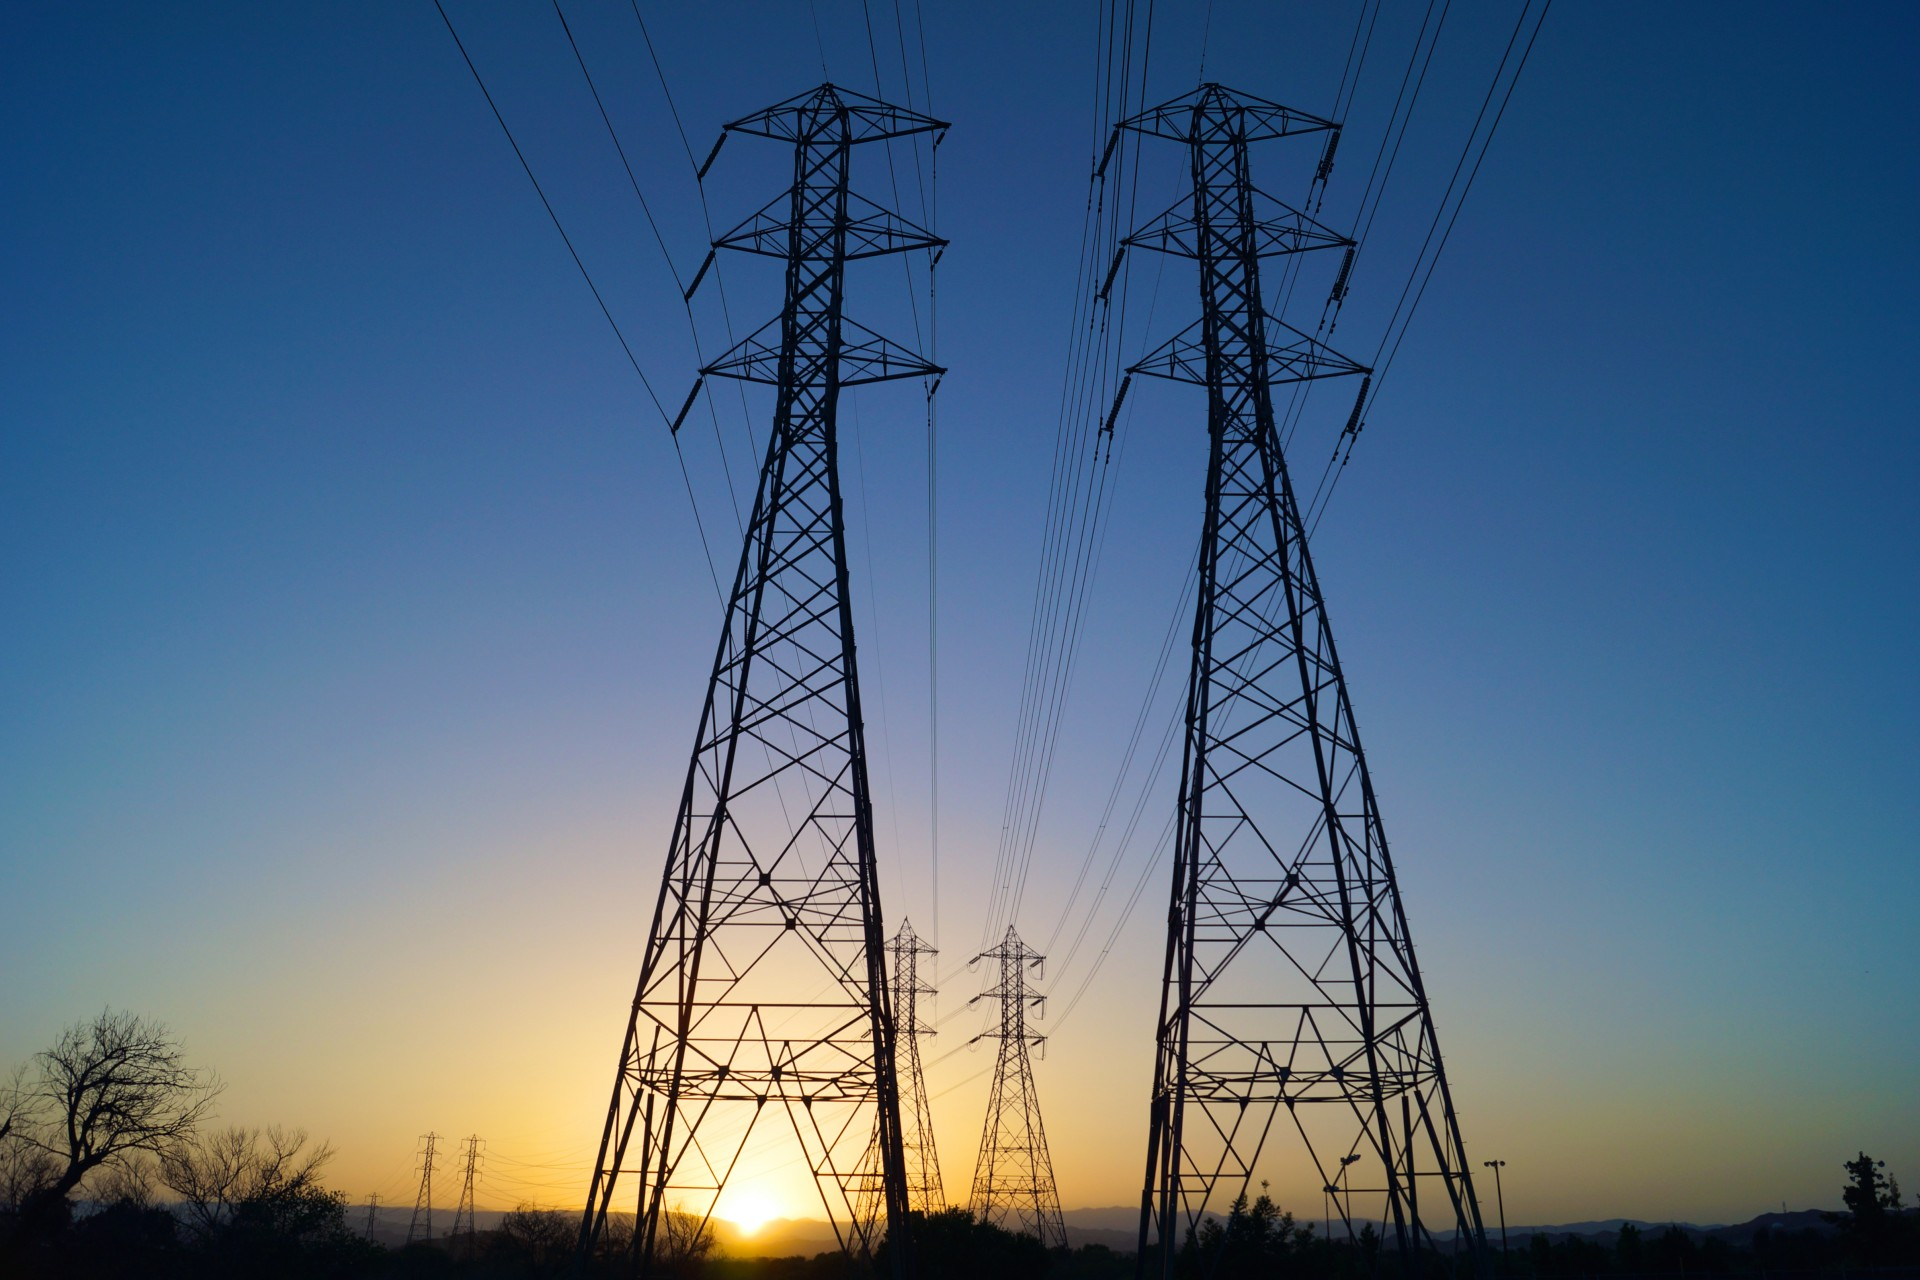 Case study: Lack of flexibility in European electrical systems leads to deteriorated grid management